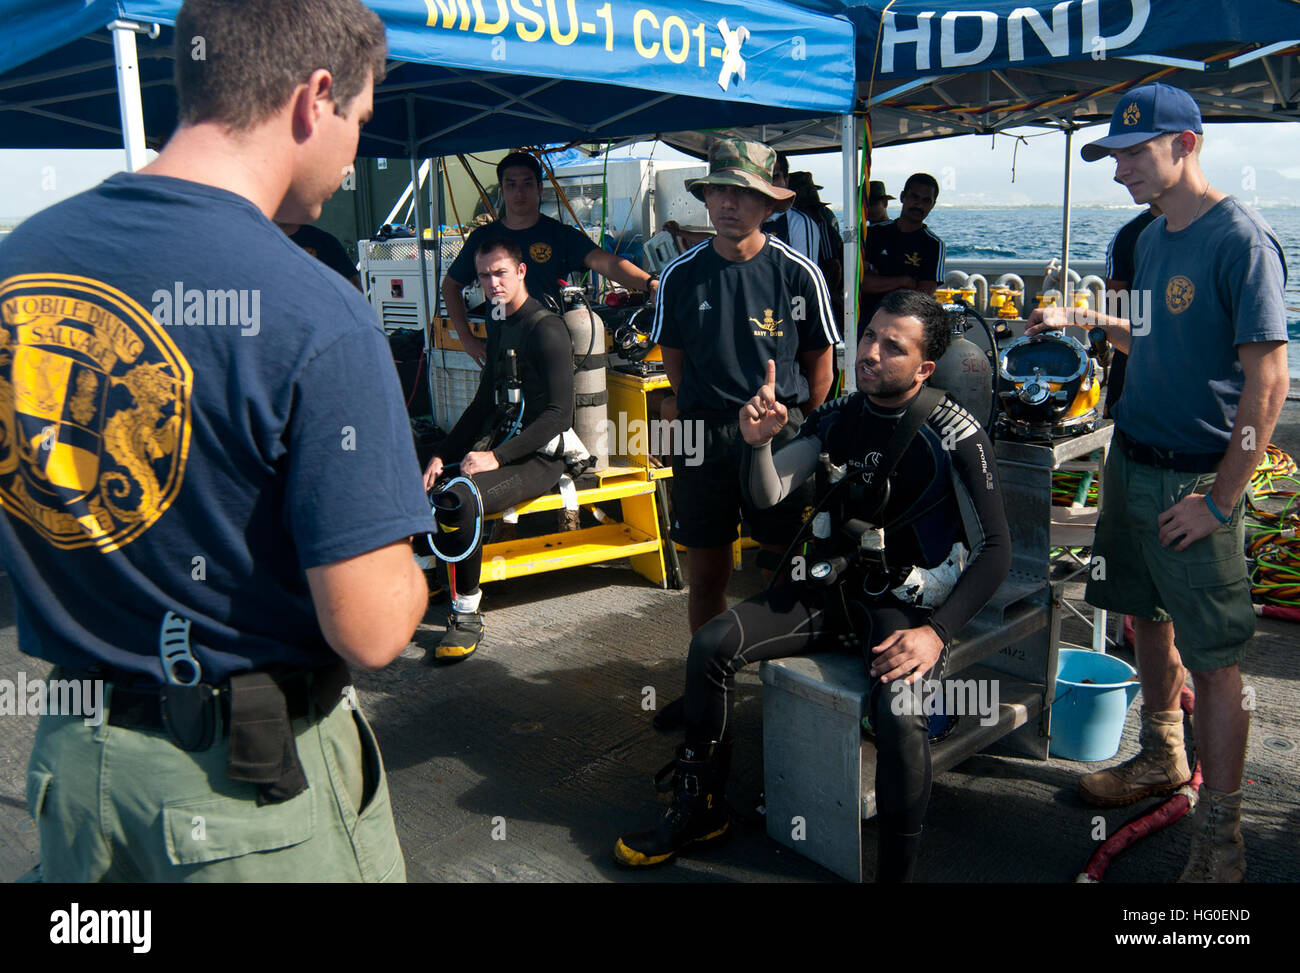 120213-N-WX059-152 PACIFIC OCEAN (Feb. 13, 2012) Navy Diver 1st Class John Scalise discusses diving safety precautions - Stock Image